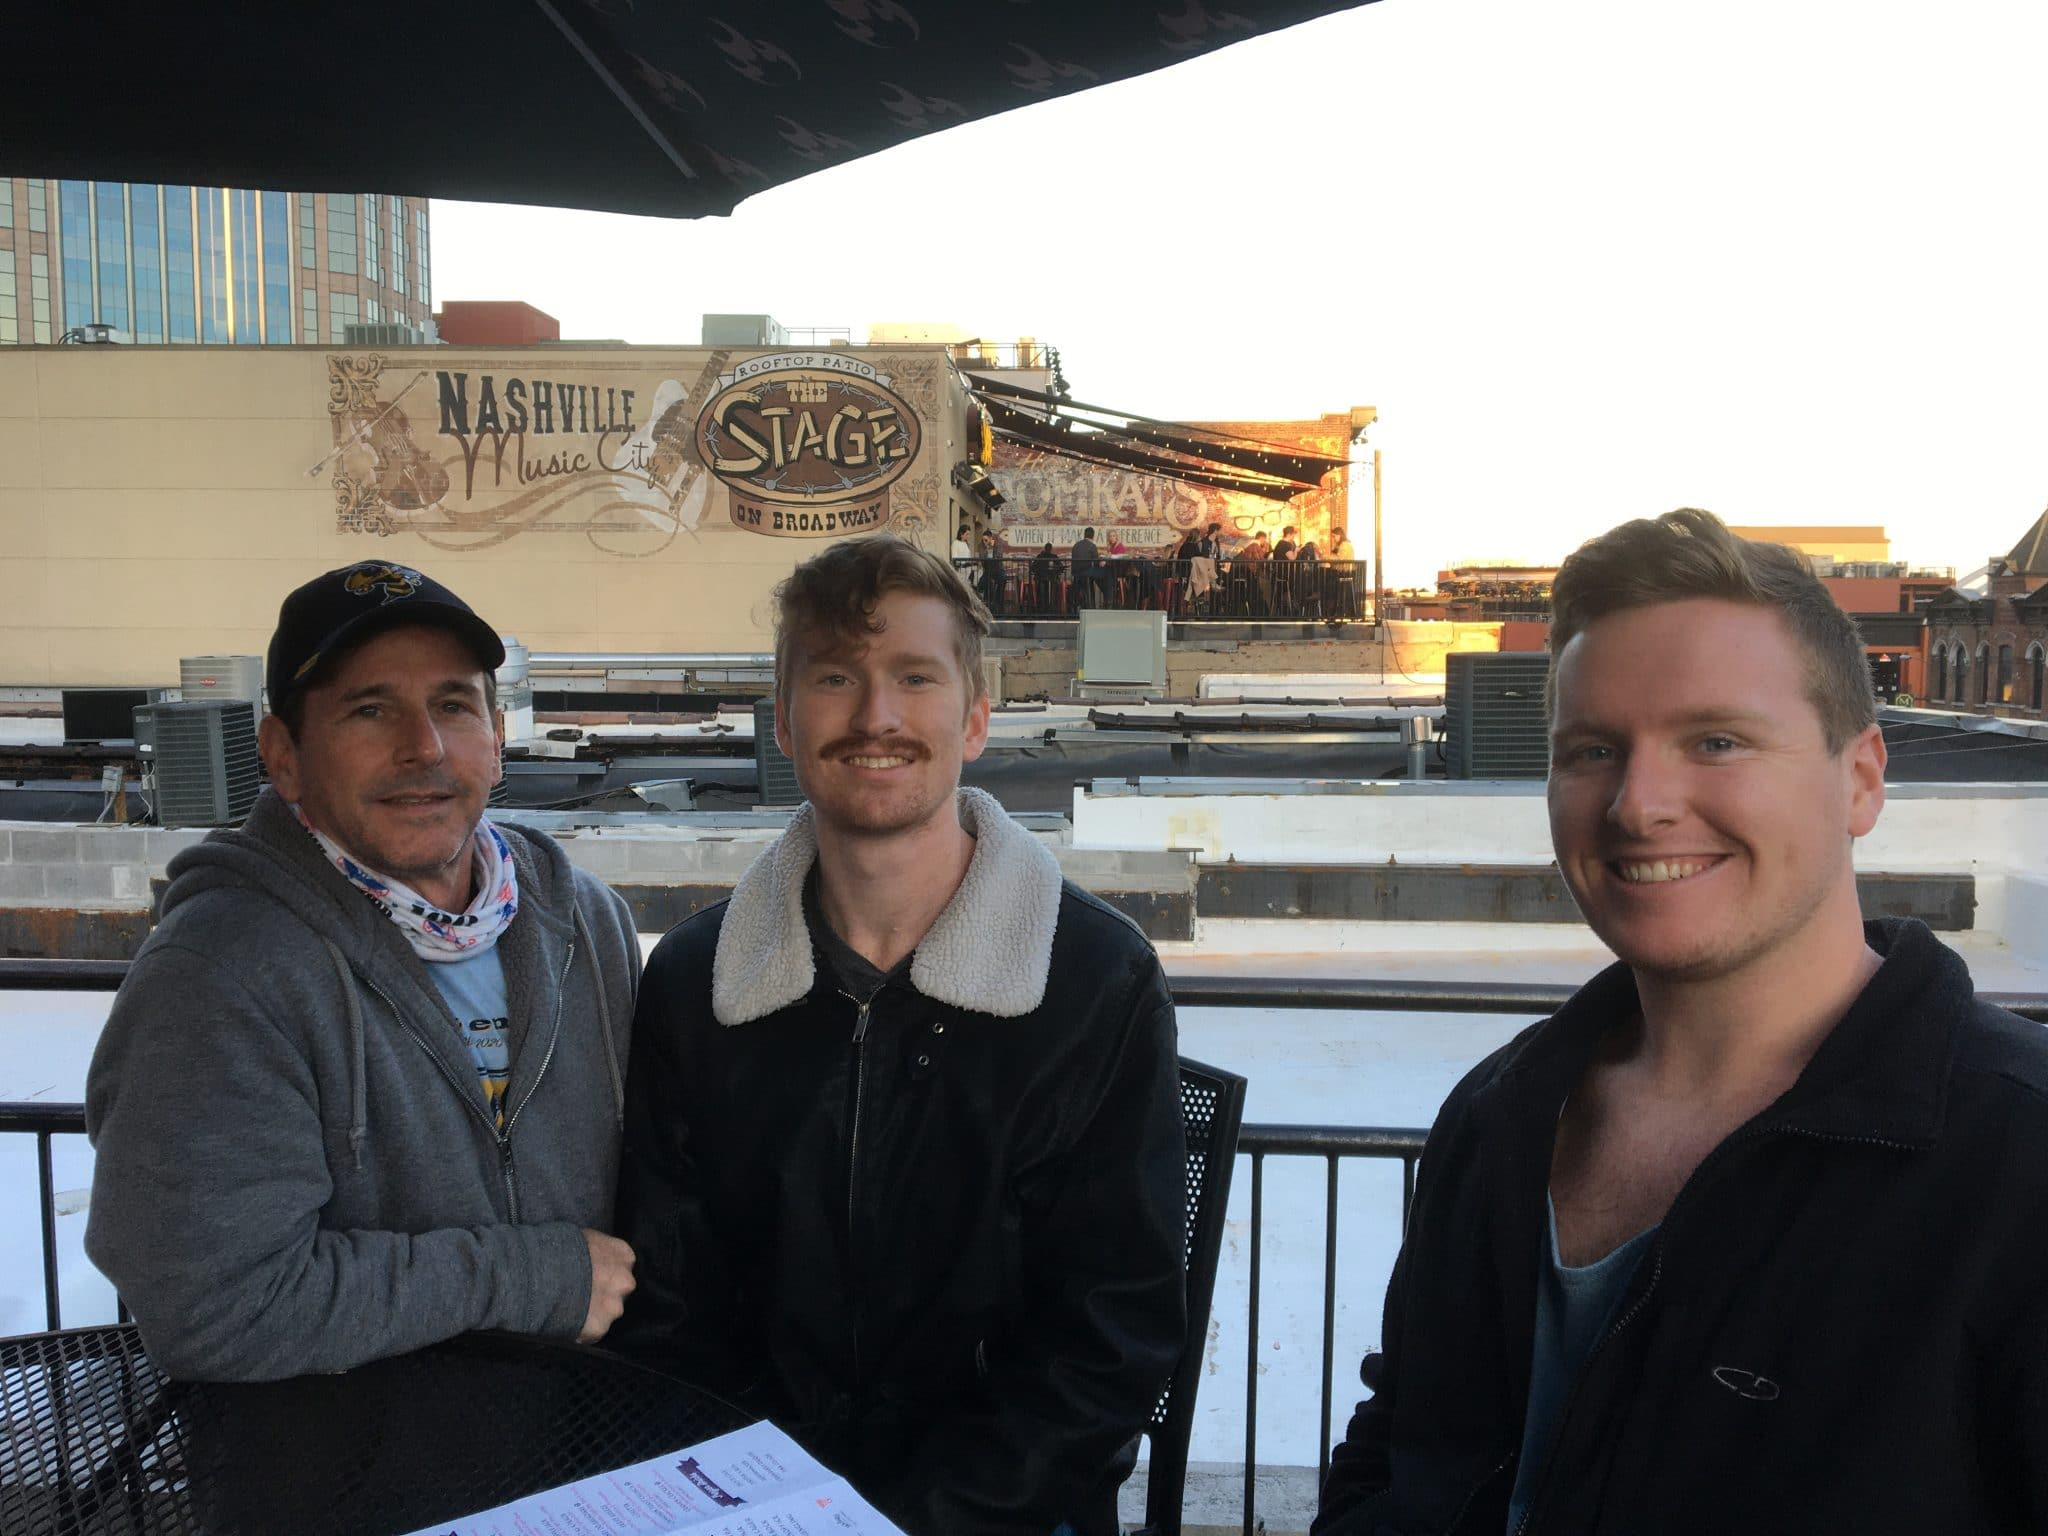 Jacob Schuster poses for a photo with two other men in Nashville.